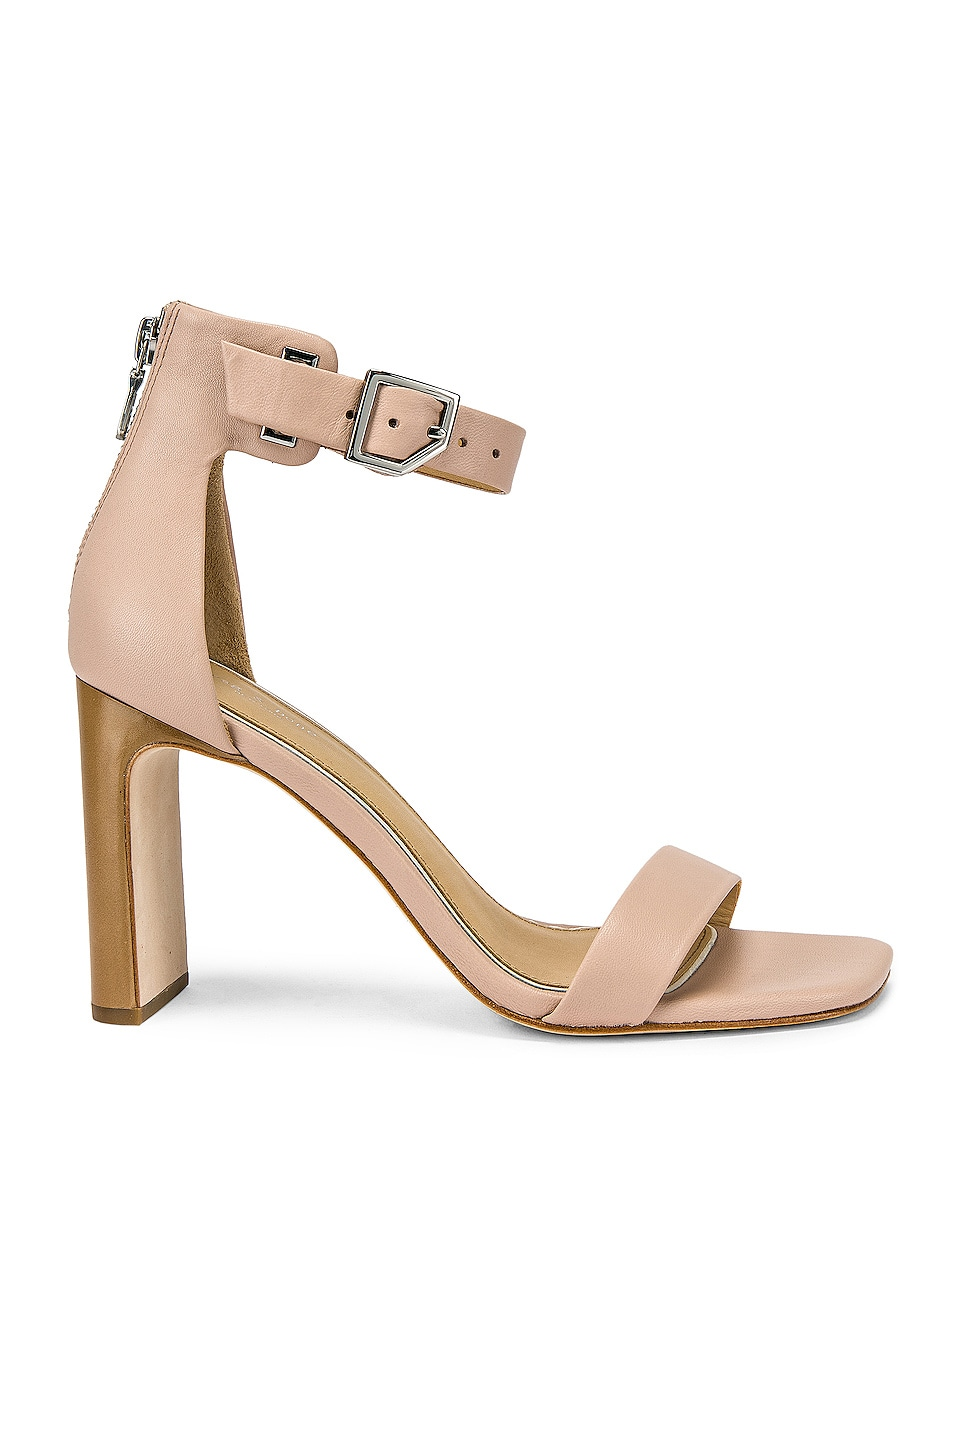 Rag & Bone Ellis Sandal in Nude